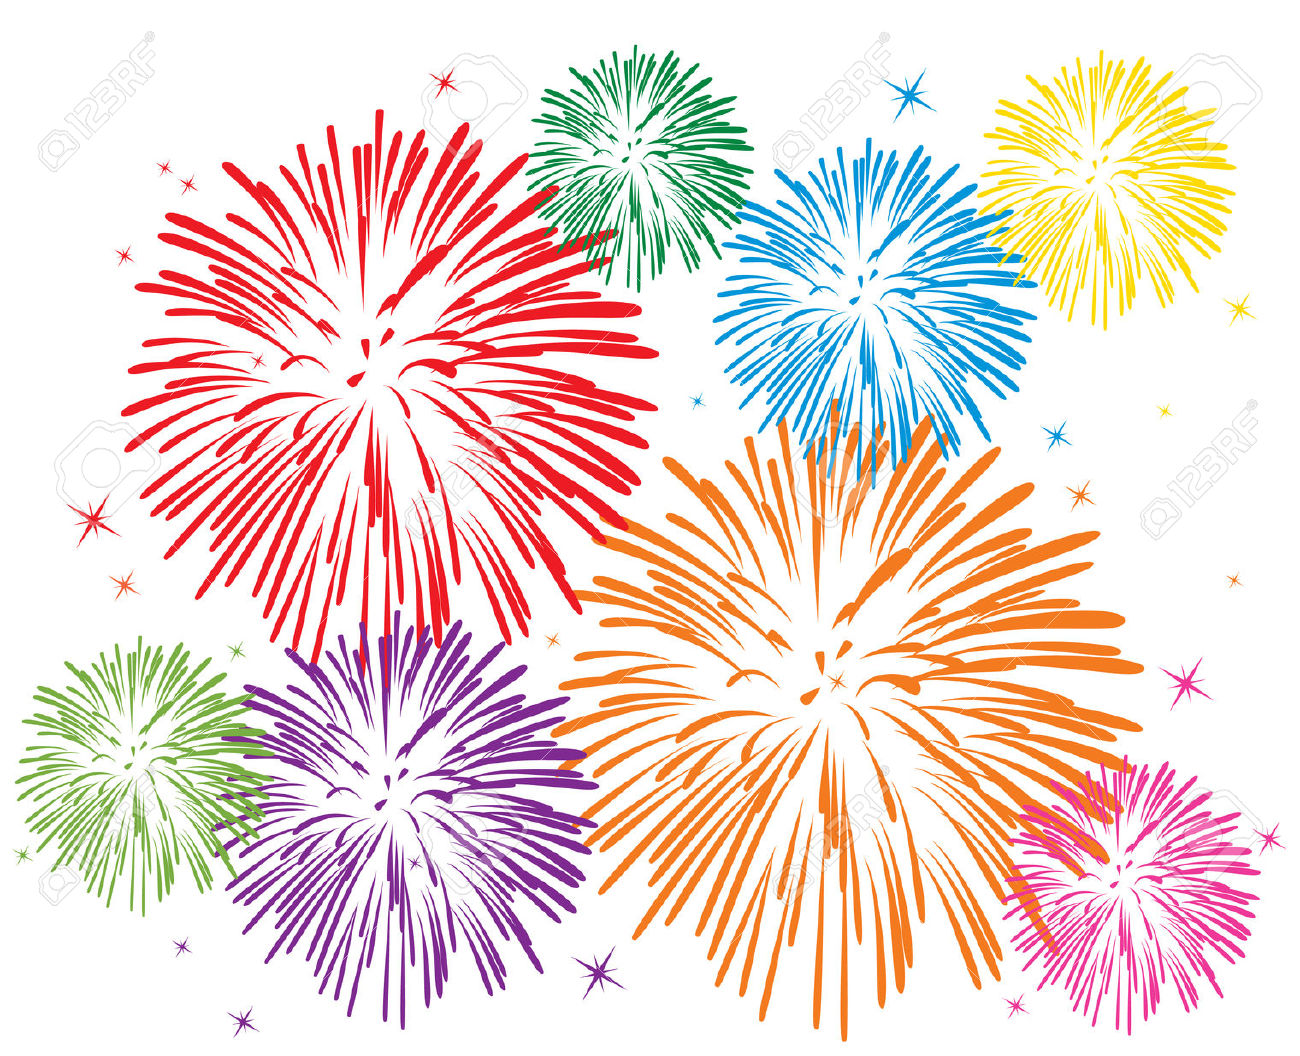 Fireworks Clipart #6726-Fireworks Clipart #6726-13